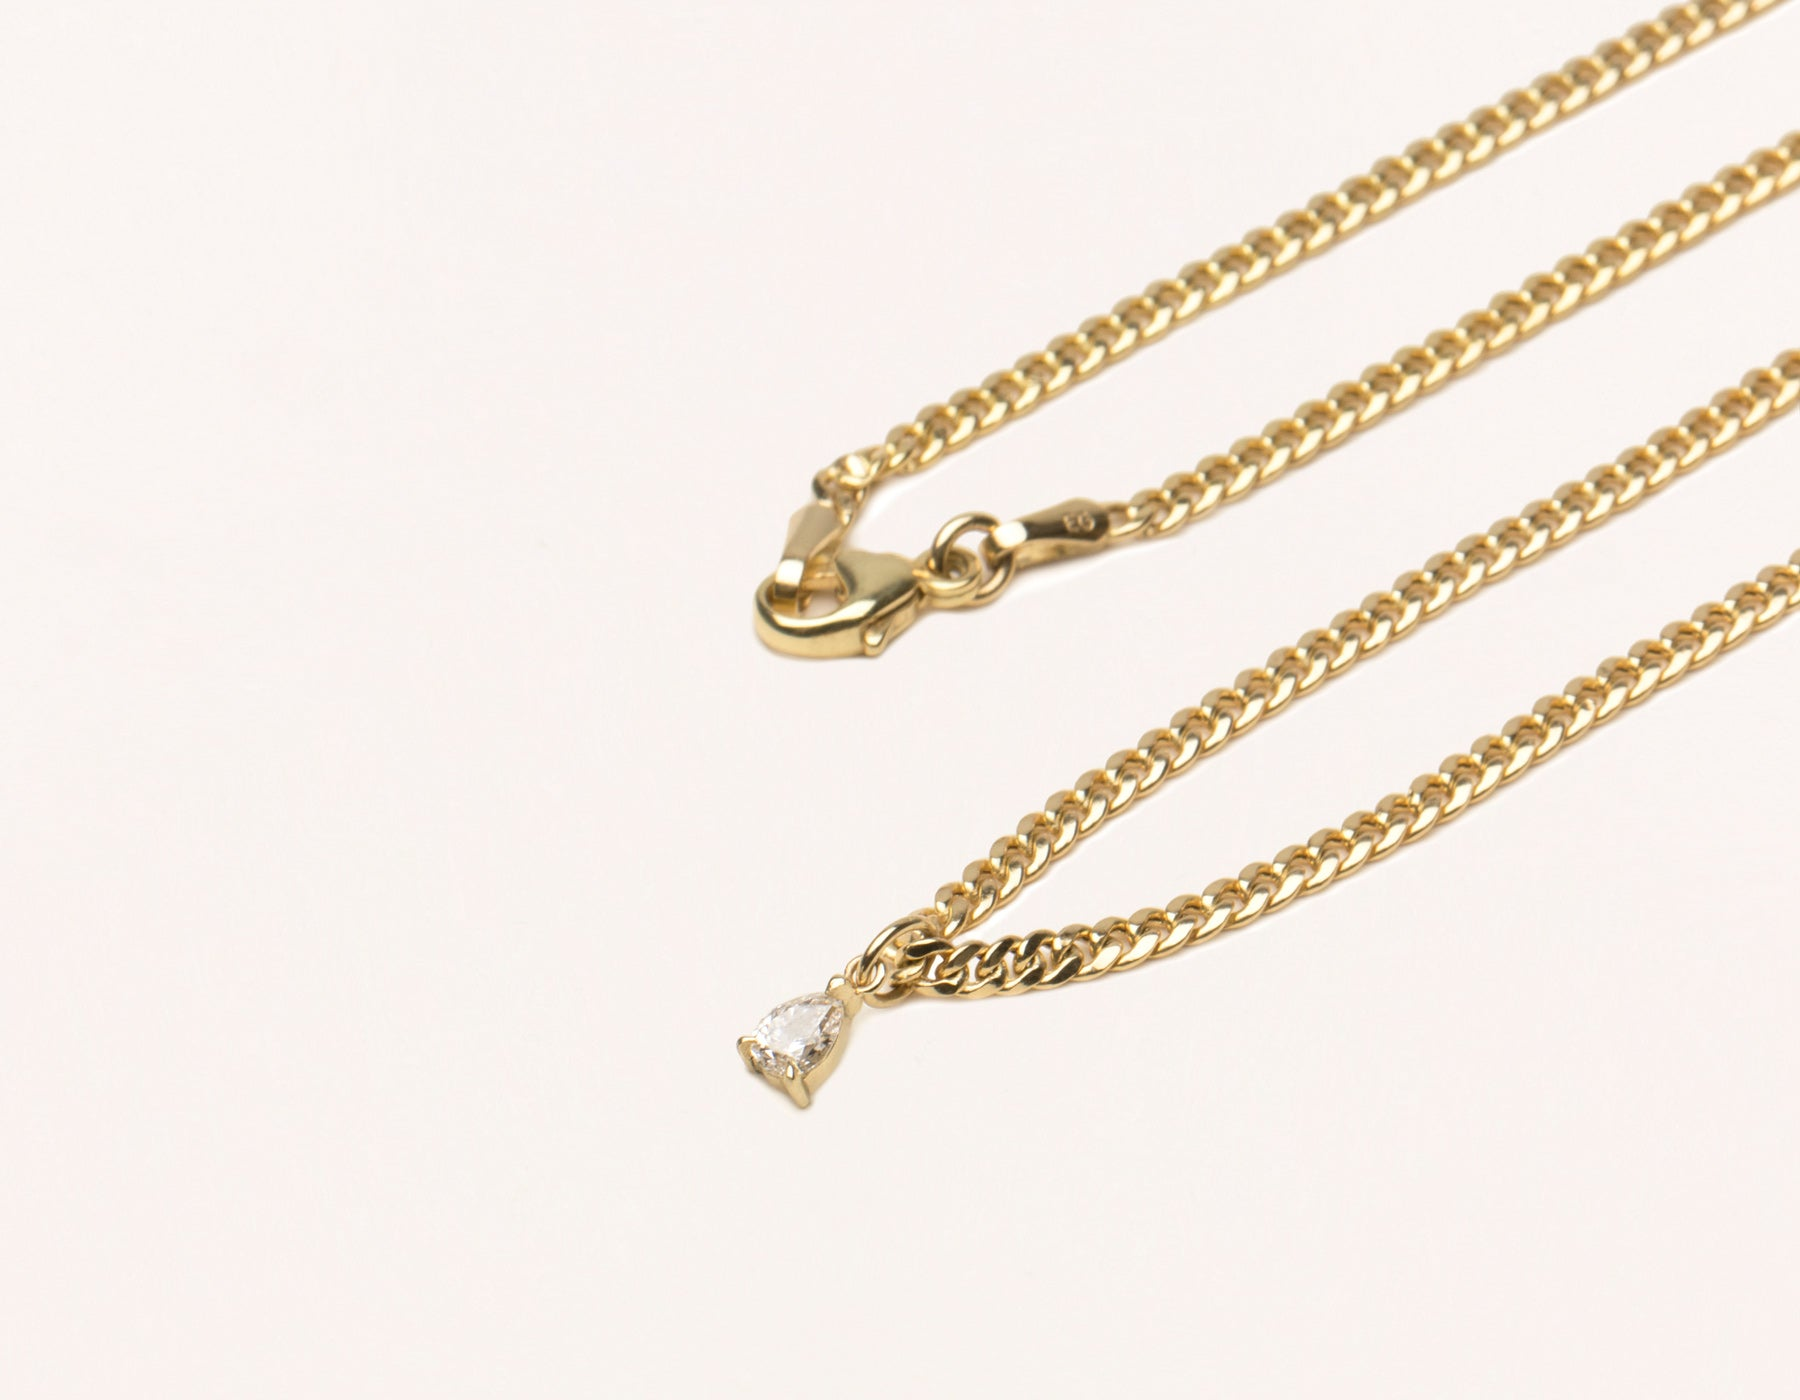 Simple Classic 14K Solid Gold Pear Diamond Pendant on thick Cuban Link chain with lobster clasp Vrai & oro, 14K Yellow Gold